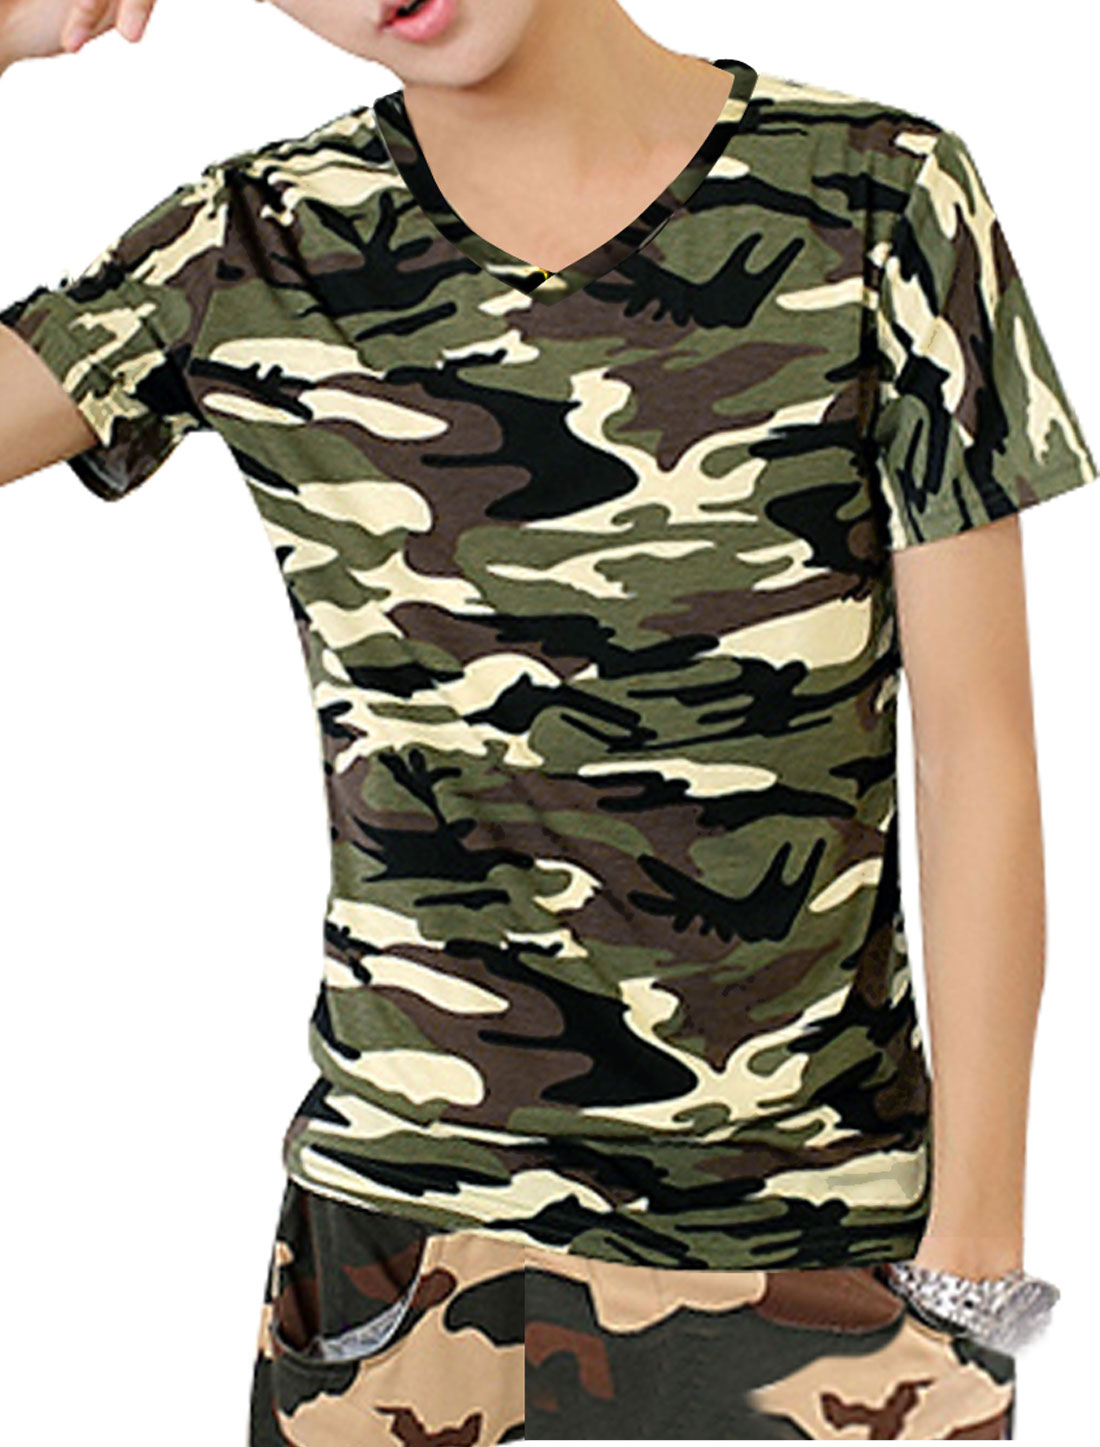 Men V Neck Camouflage Pattern Stretchy Trendy Tee Shirt Beige Brown S